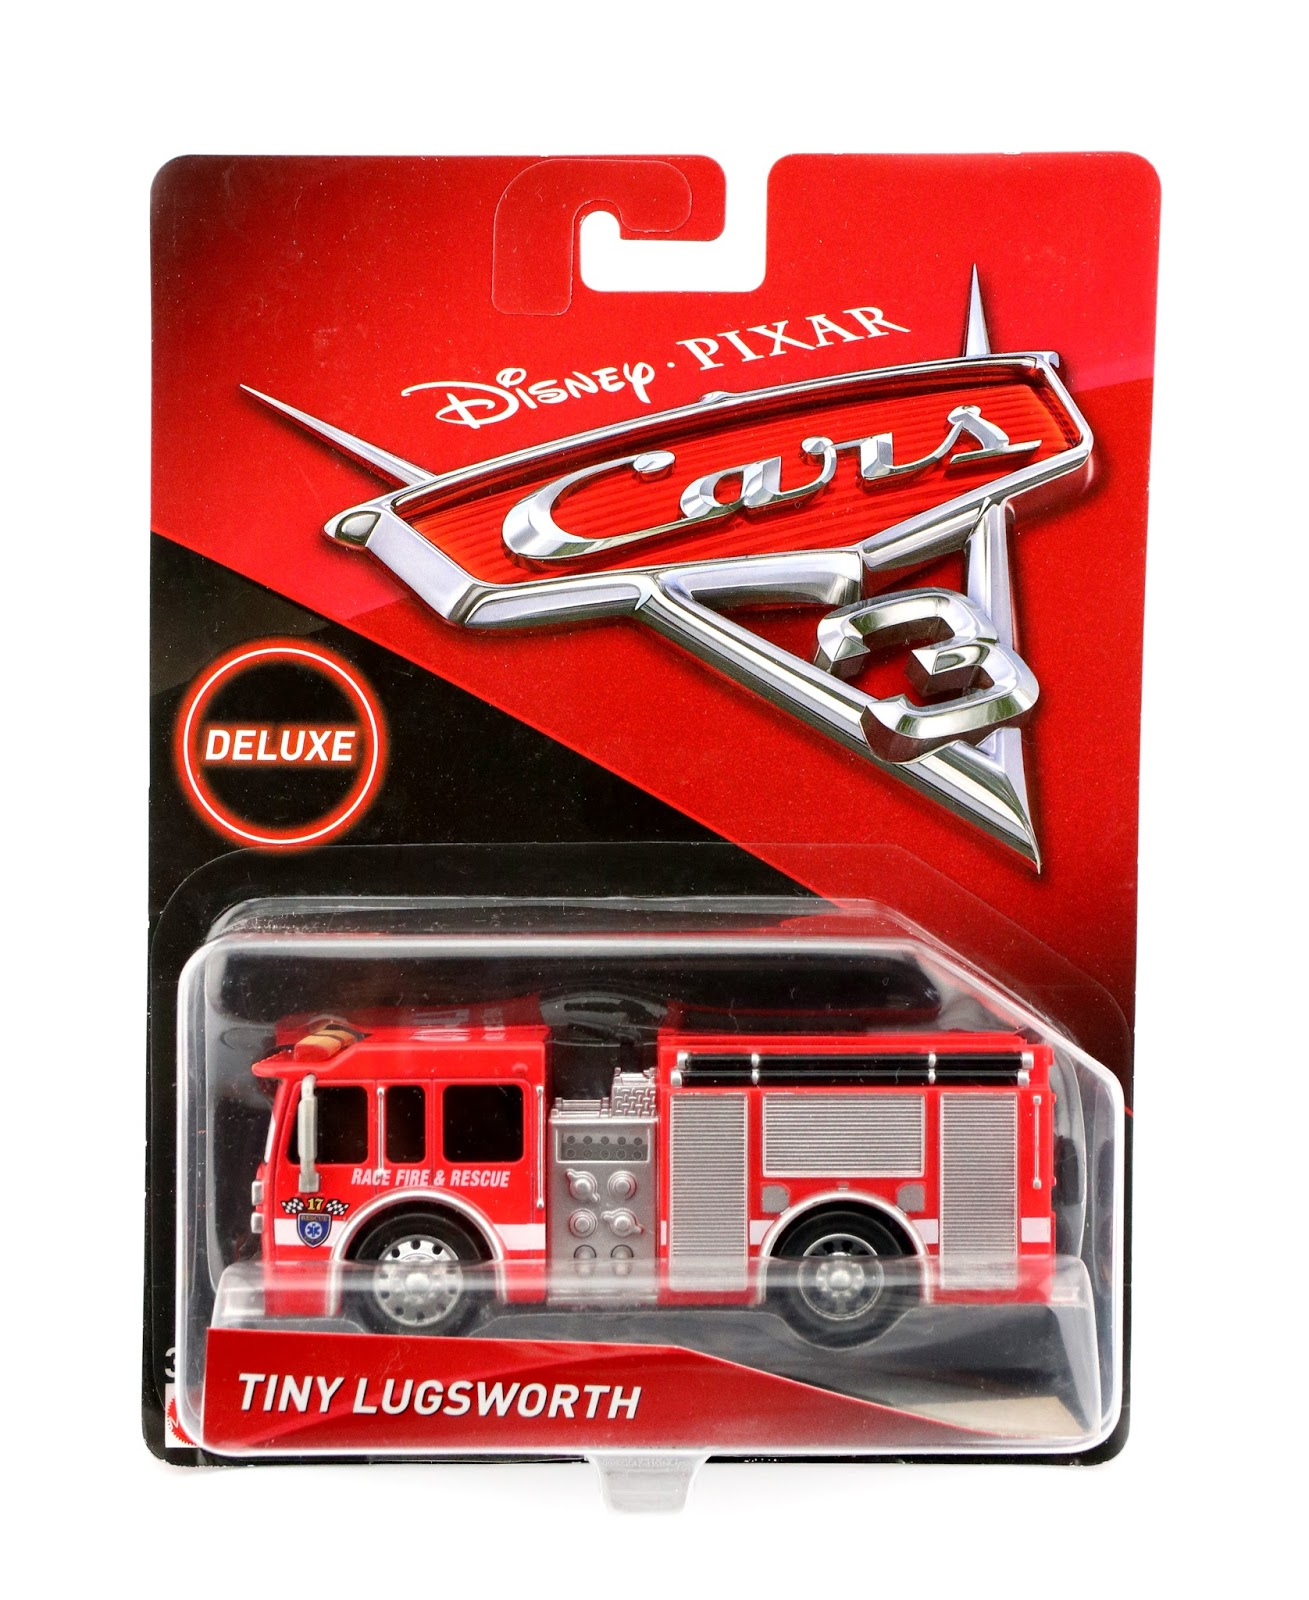 Cars 3 Tiny Lugsworth diecast